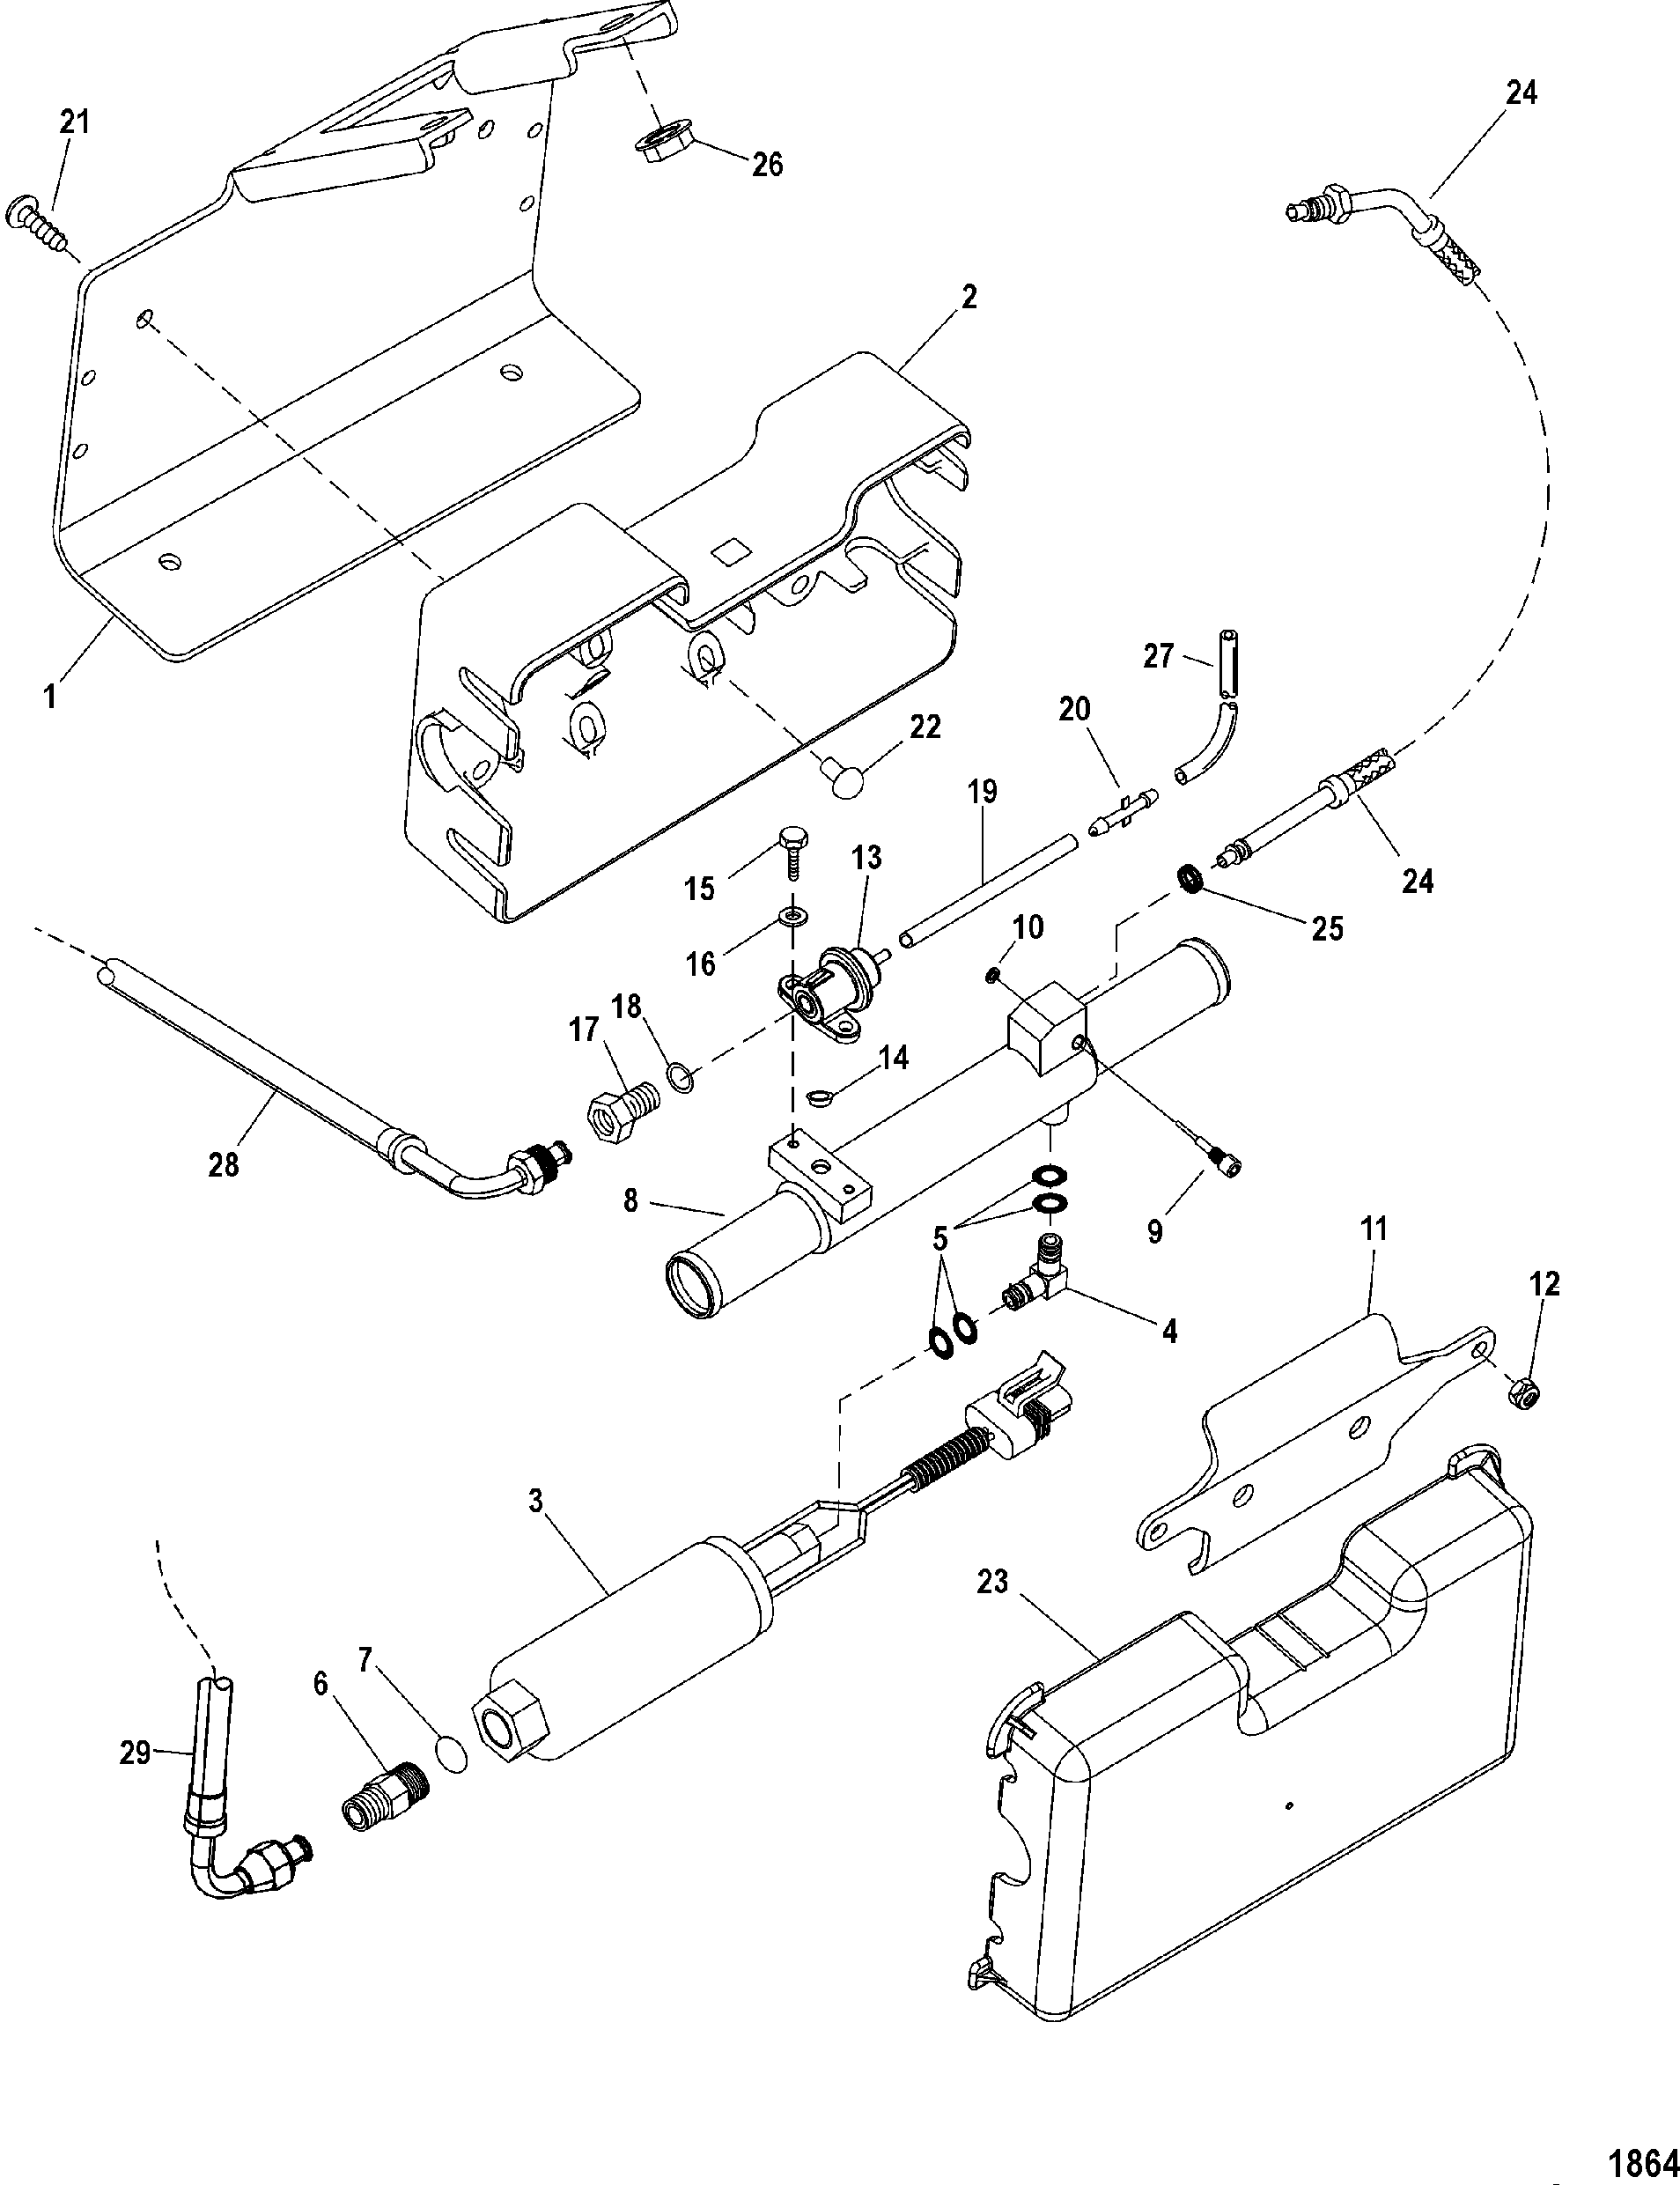 ford festiva club wiring diagram with 93 Ford Festiva Alternator Wiring Diagram on By car moreover Geo Metro Fuse Box 1 likewise 48 Volt Club Car Wiring Diagram furthermore 2002 Ford Taurus Engine Diagram besides 93 Ford Festiva Alternator Wiring Diagram.